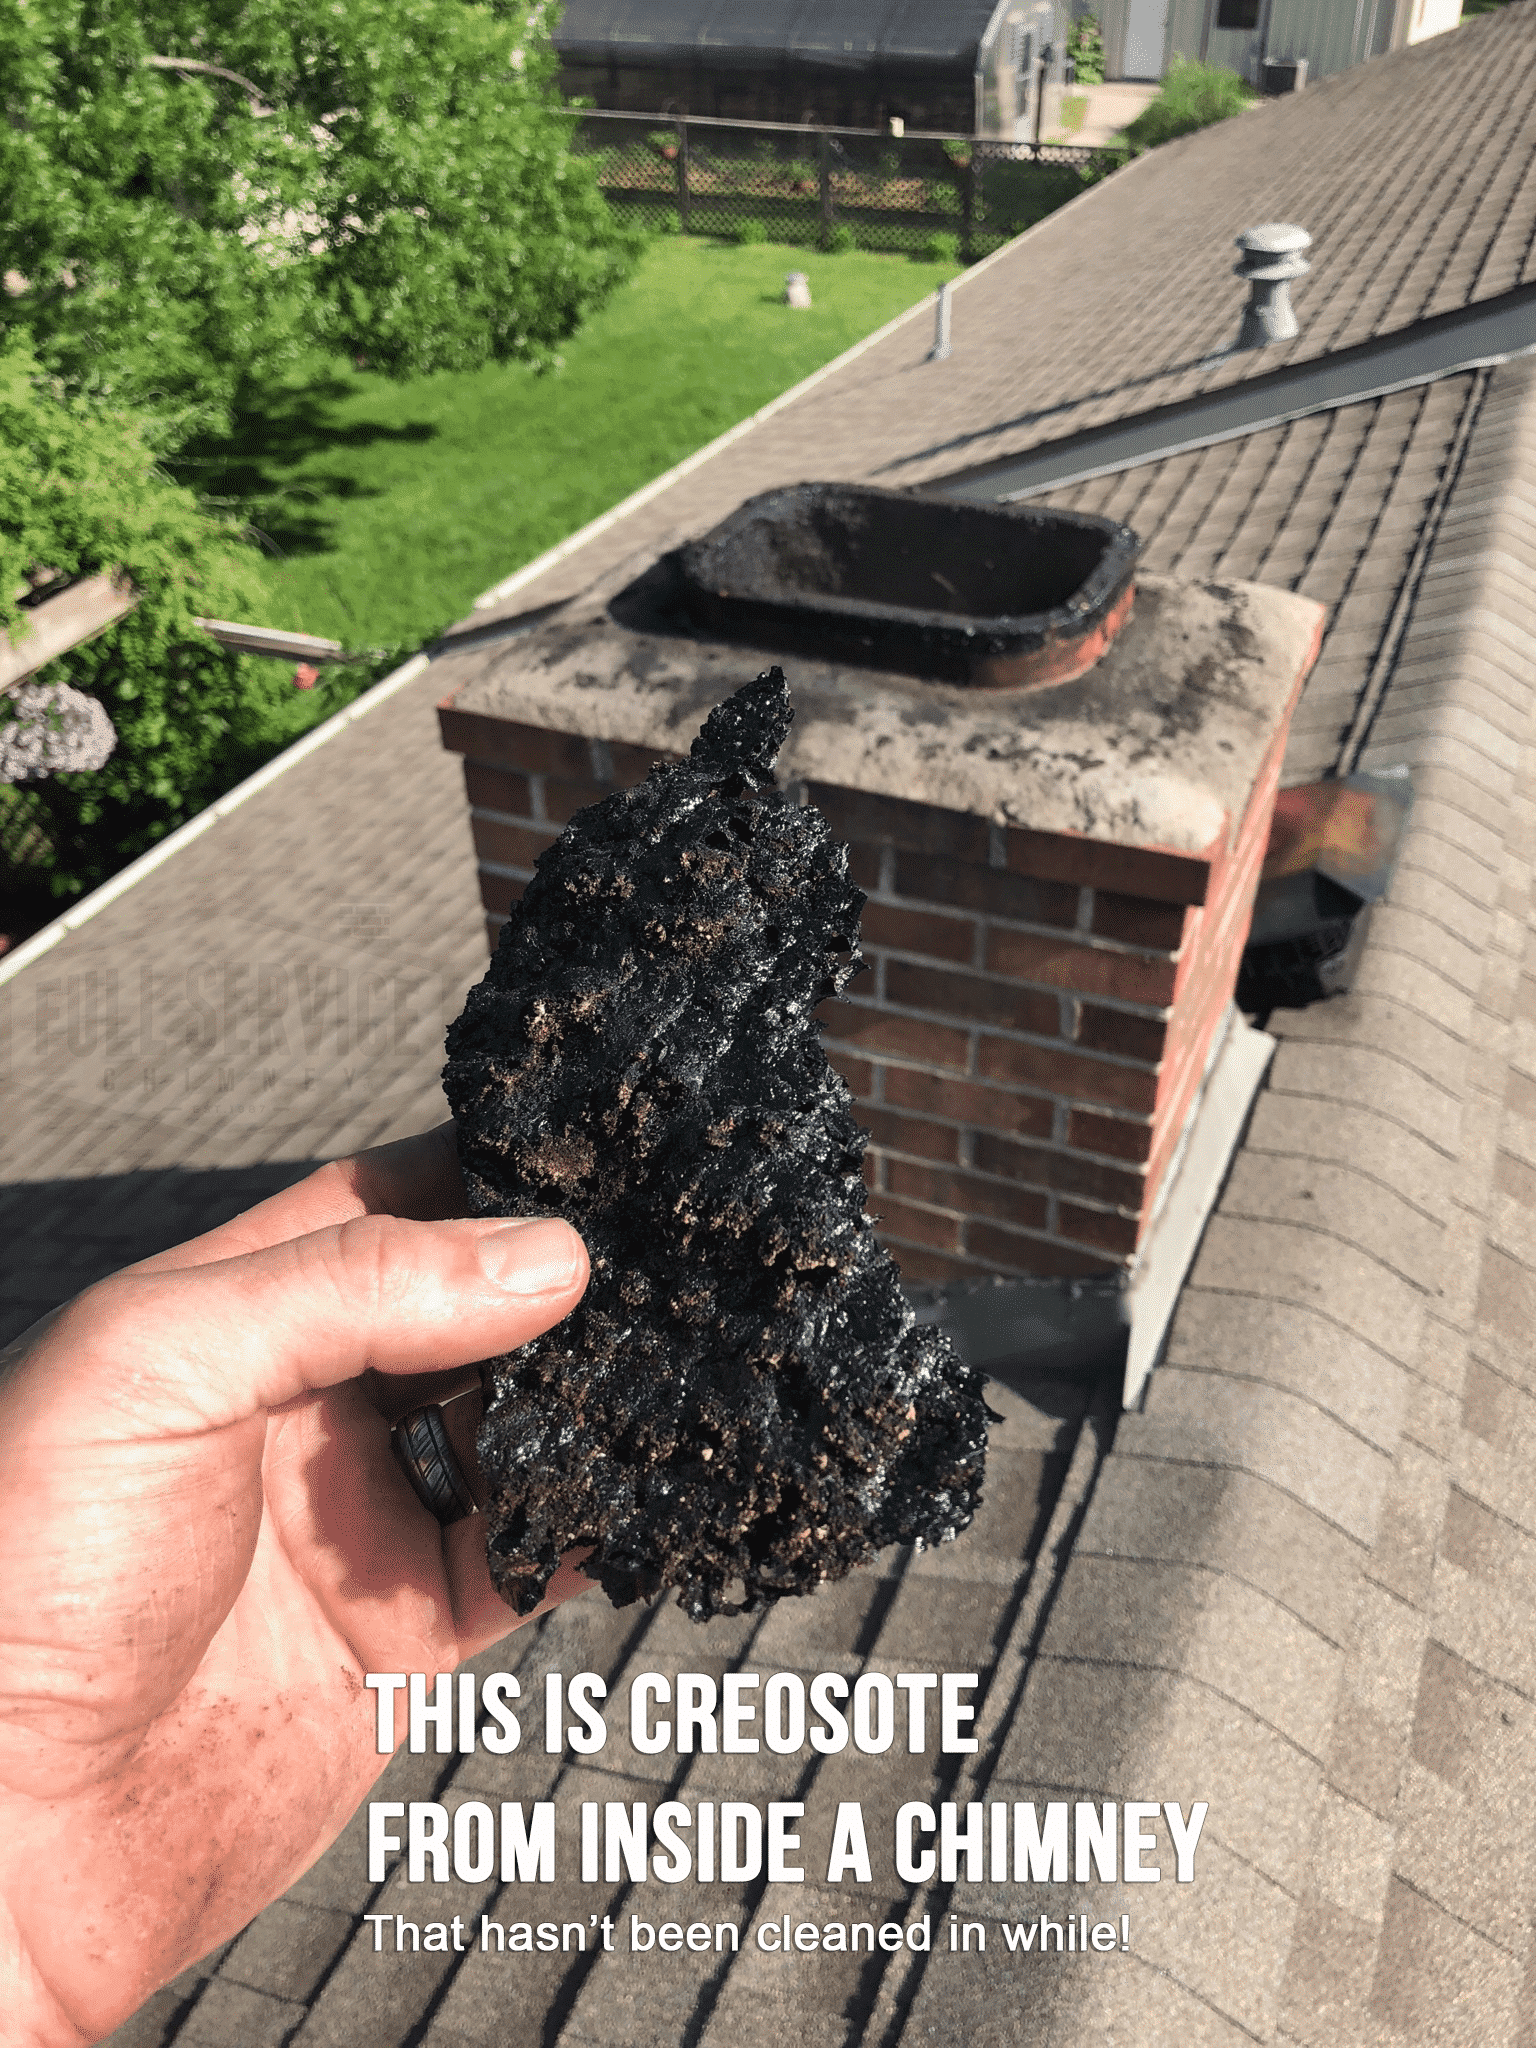 Creosote from inside a chimney